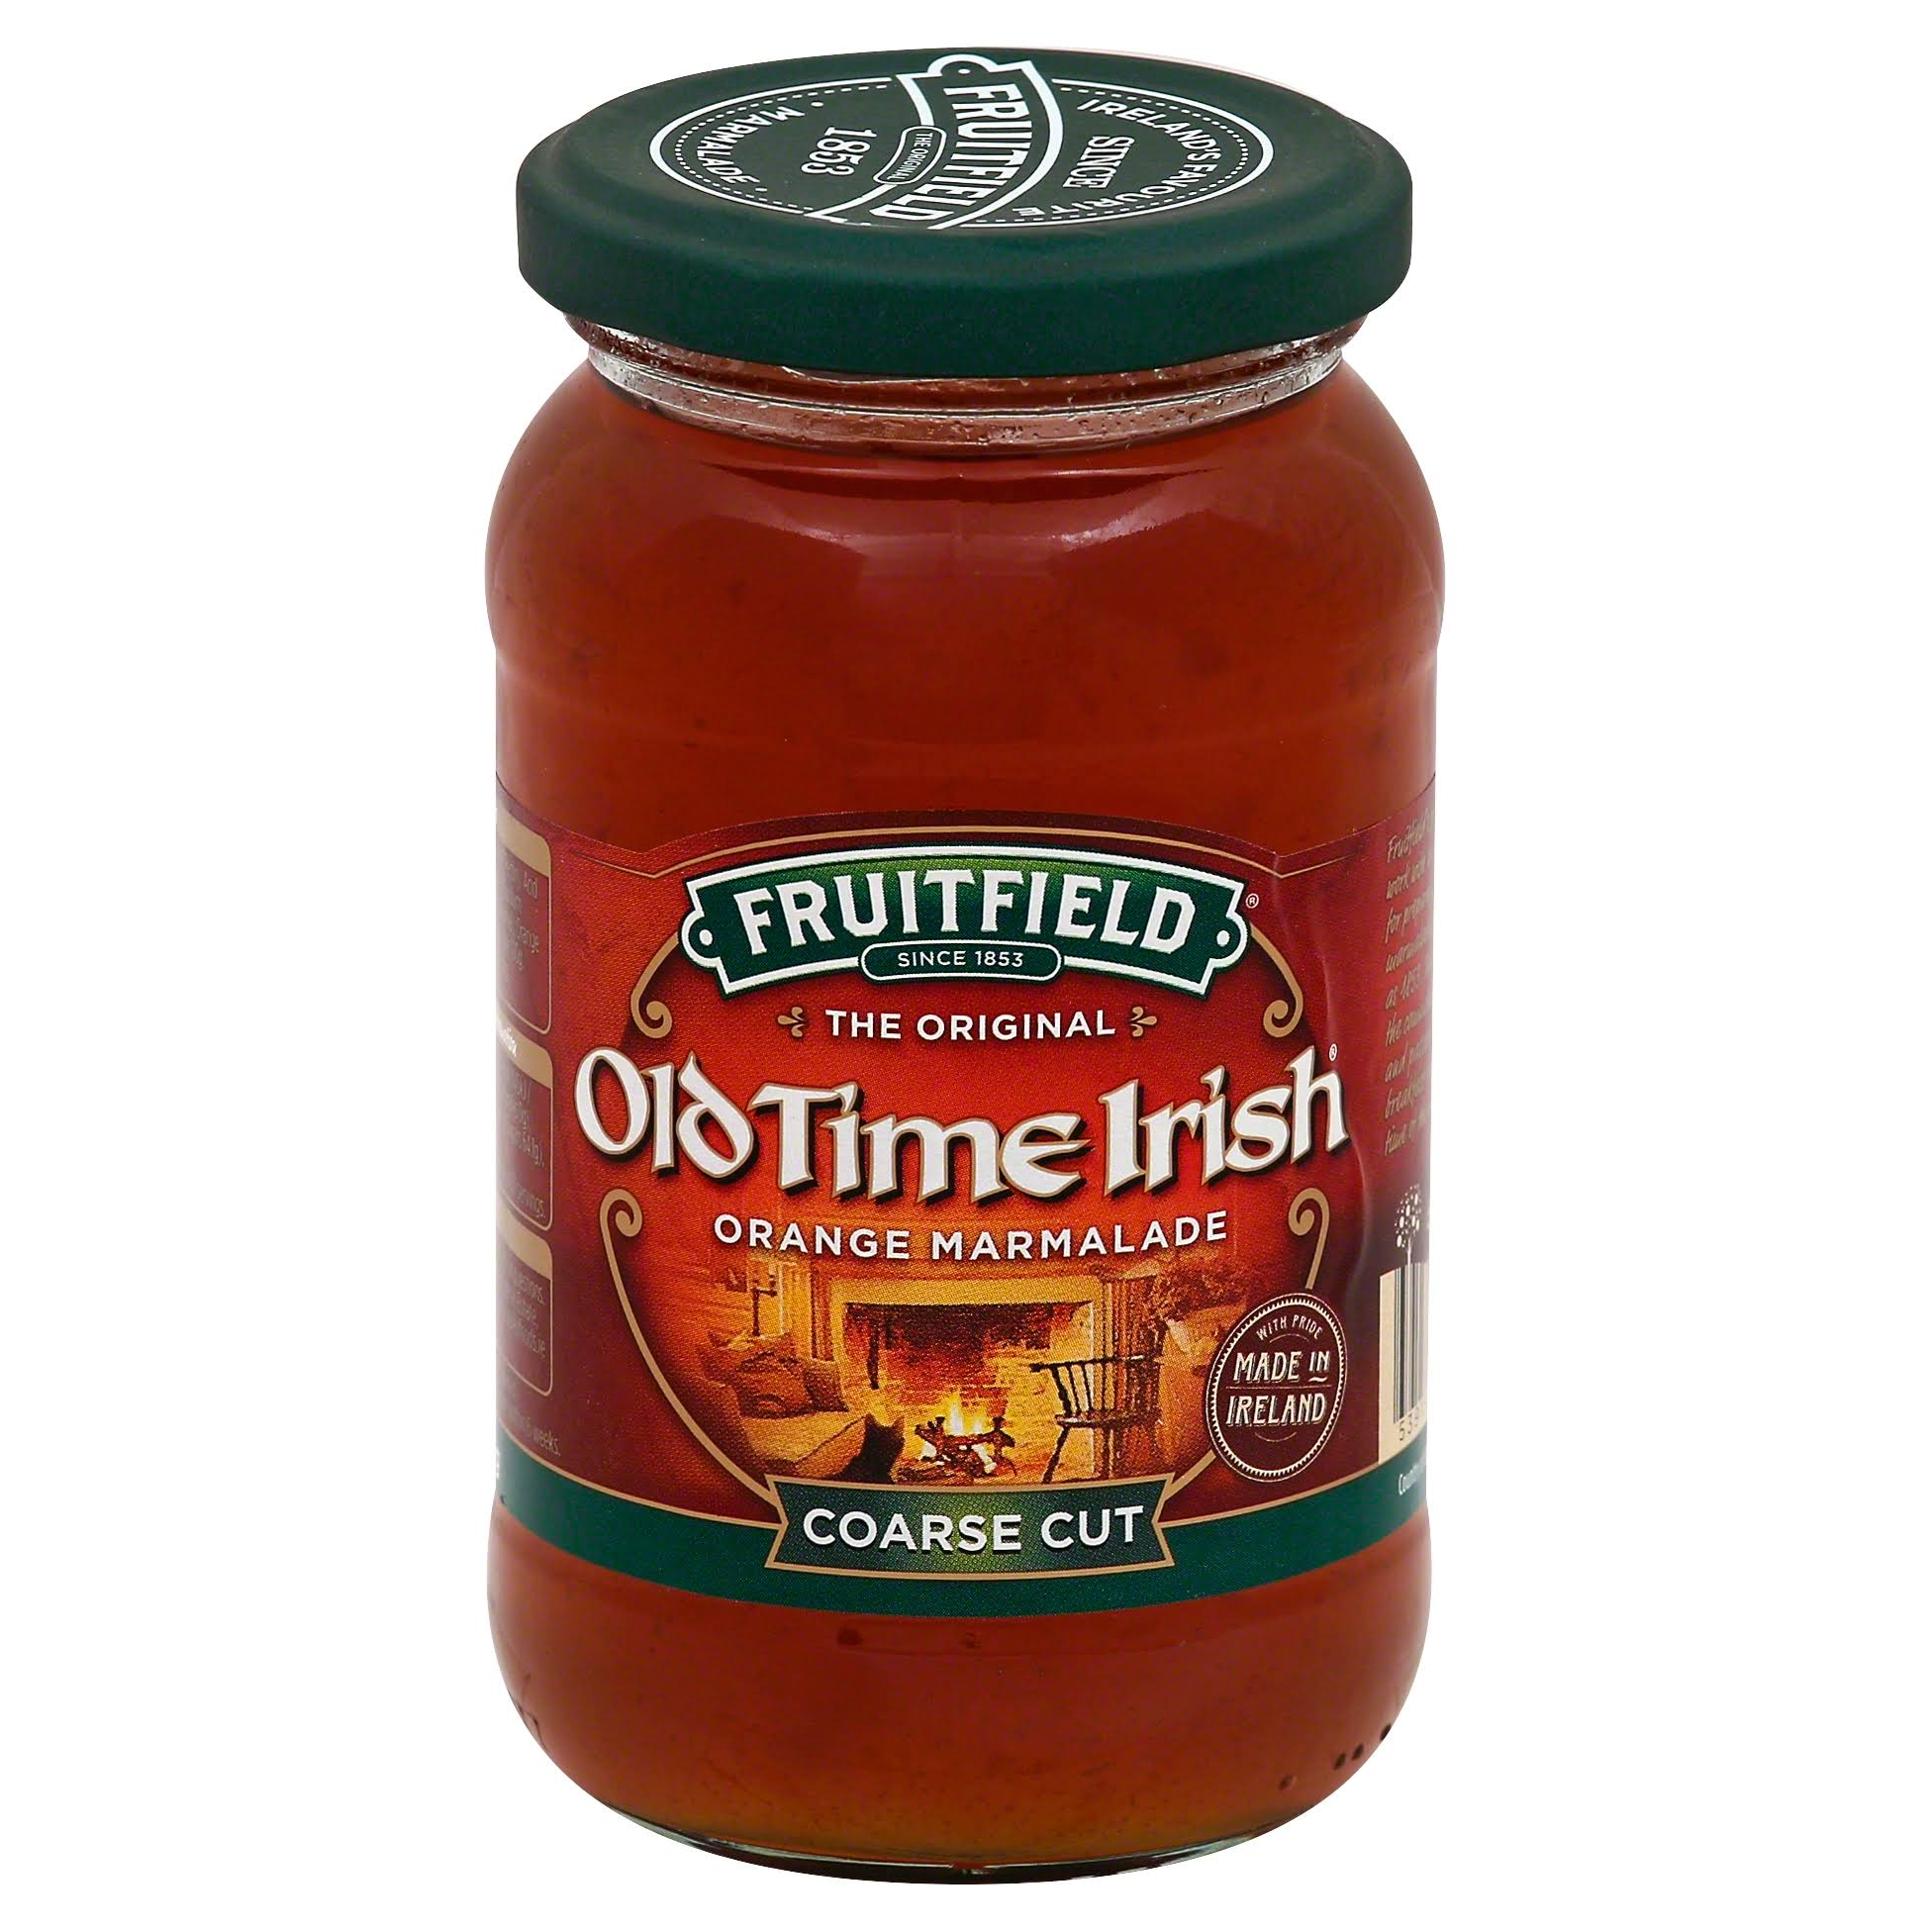 Fruitfield Old Time Irish Marmalade, Orange, Coarse Cut - 454 g